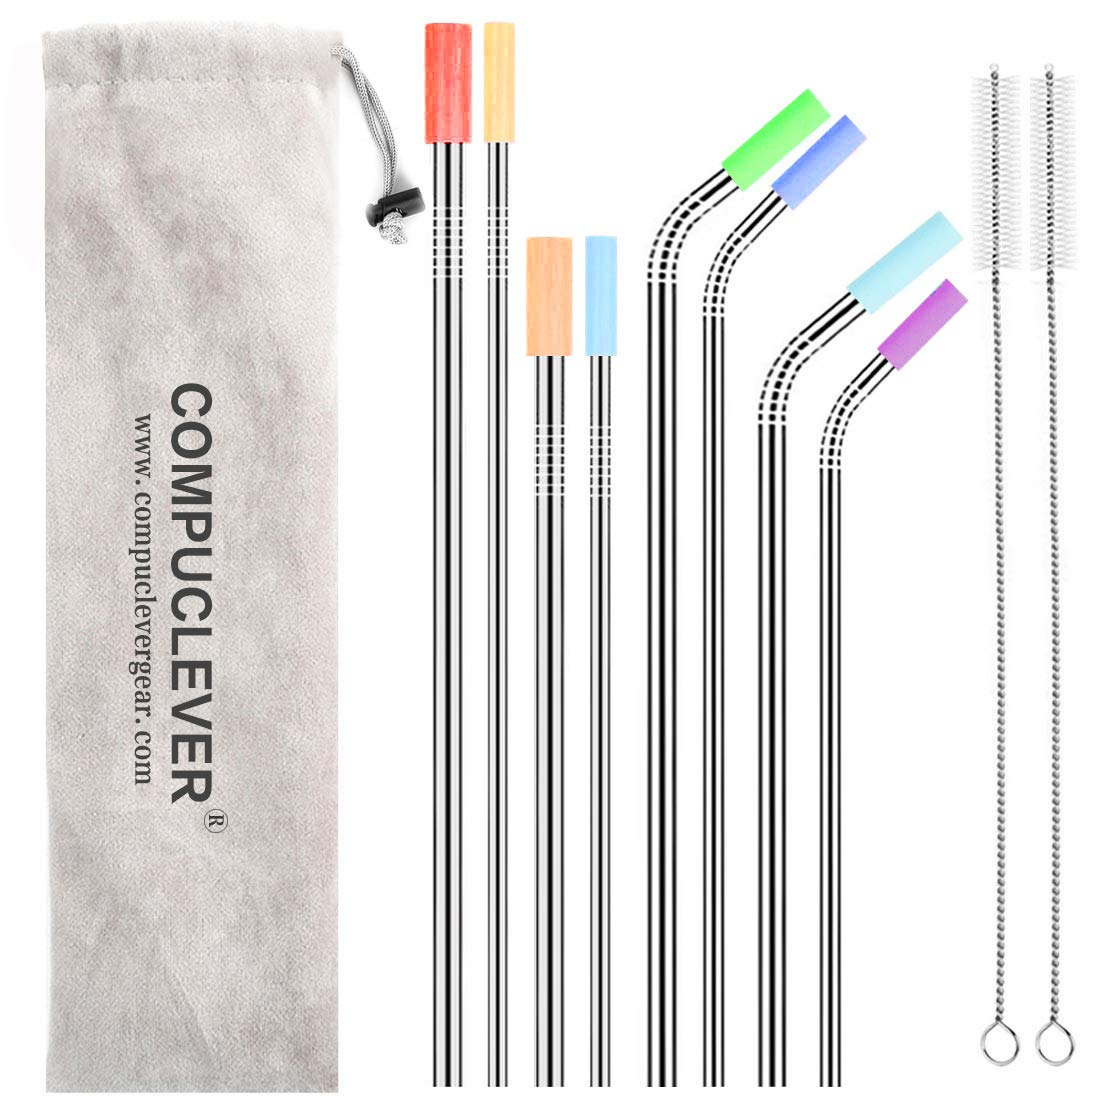 Stainless Steel Straws Set of 8 BPA Free Reusable Drinking Straws for 30oz 20oz Tumbler 10.5'' 8.5'' Diameter 0.24'' 0.31'' with 8 Silicone Tips 2 Cleaning Brushes and Pouch(4 bent 4 straight)